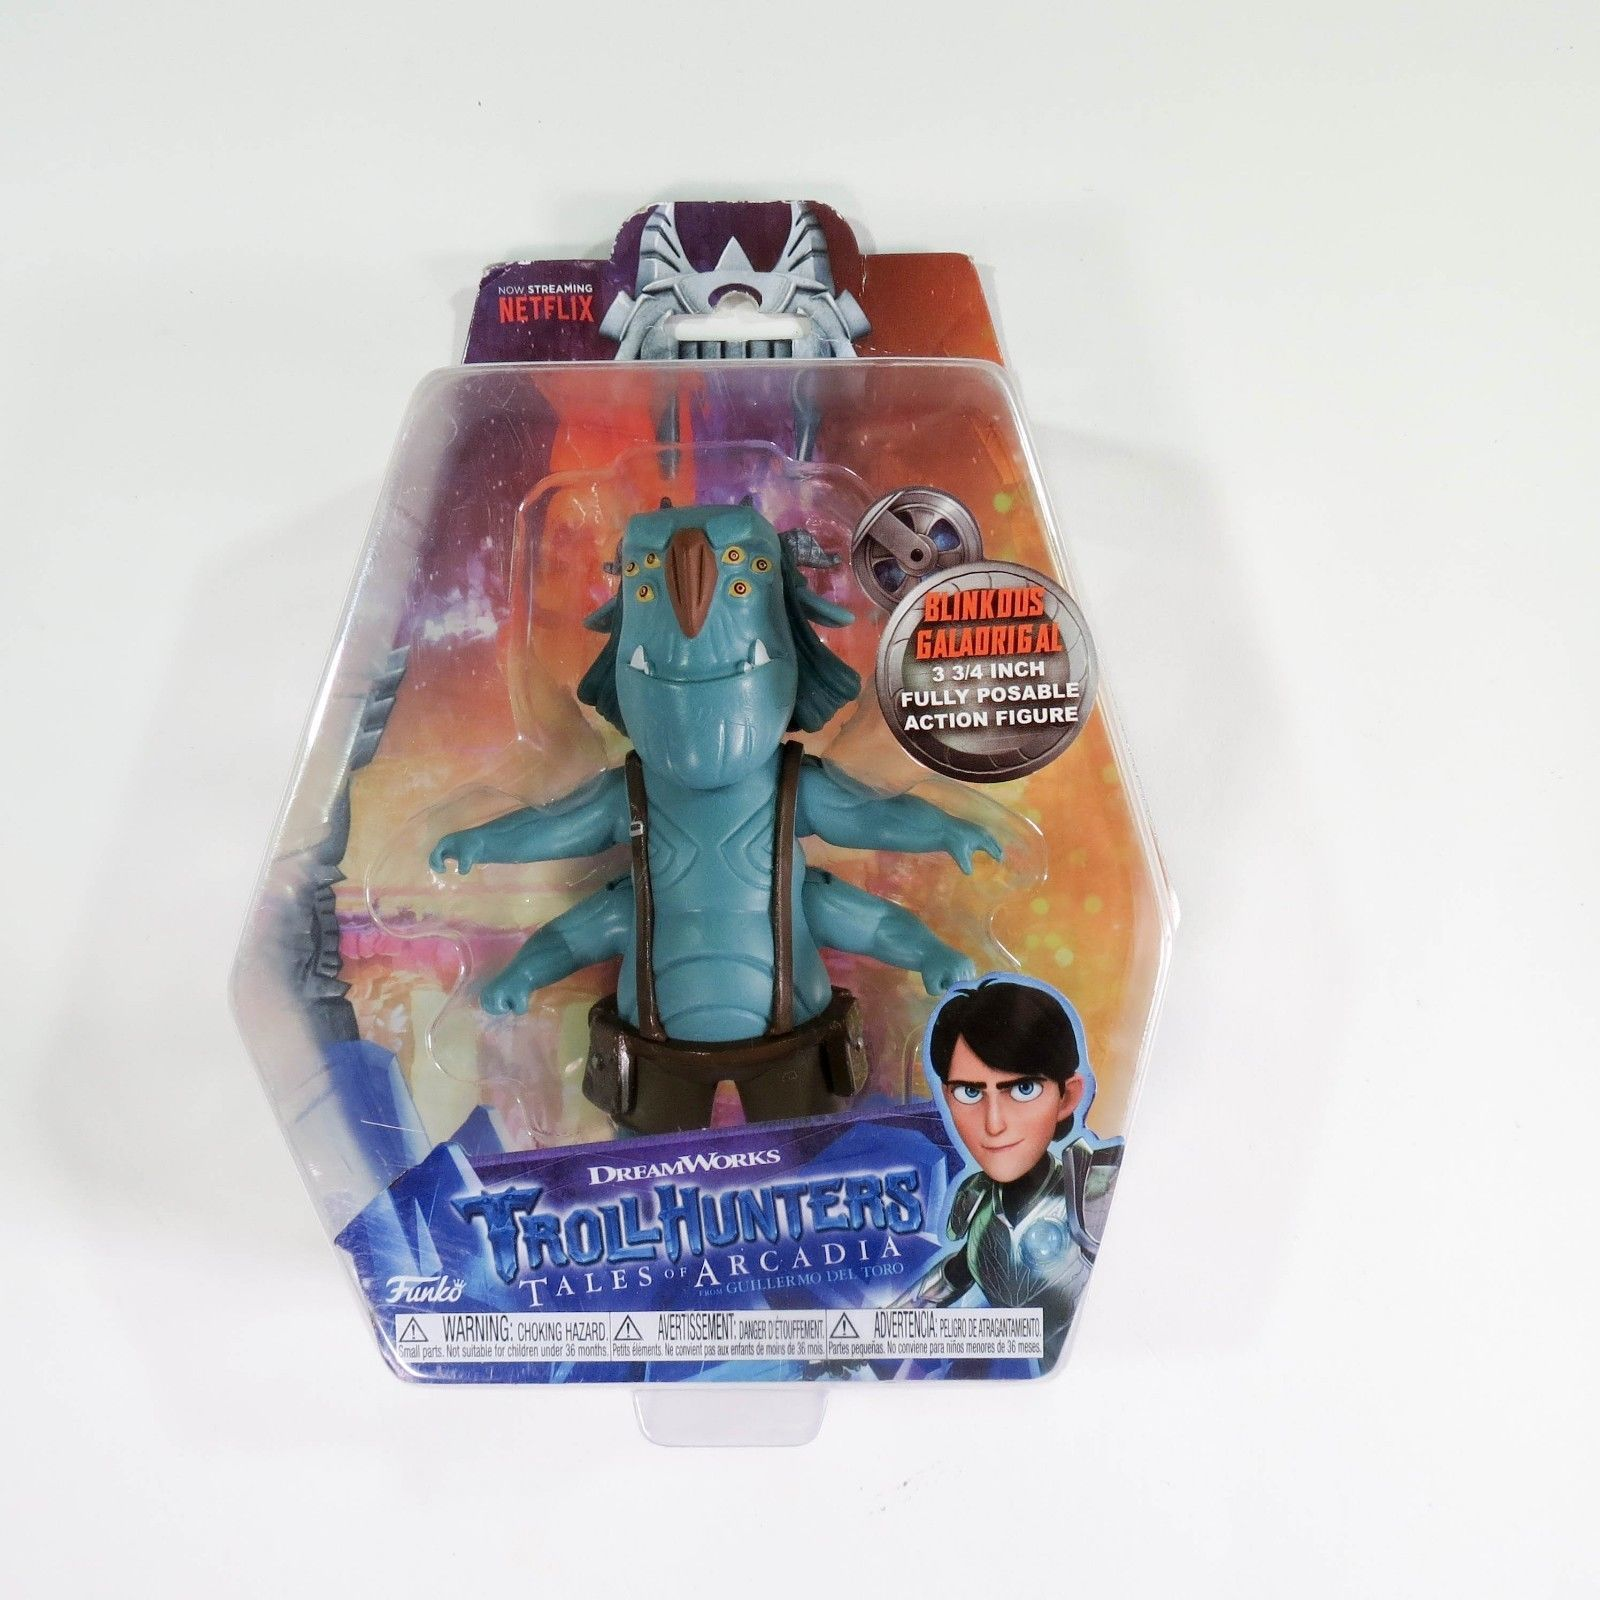 Funko Trollhunters Blinky action figure 3.75 inch Blinkous Galadrigal